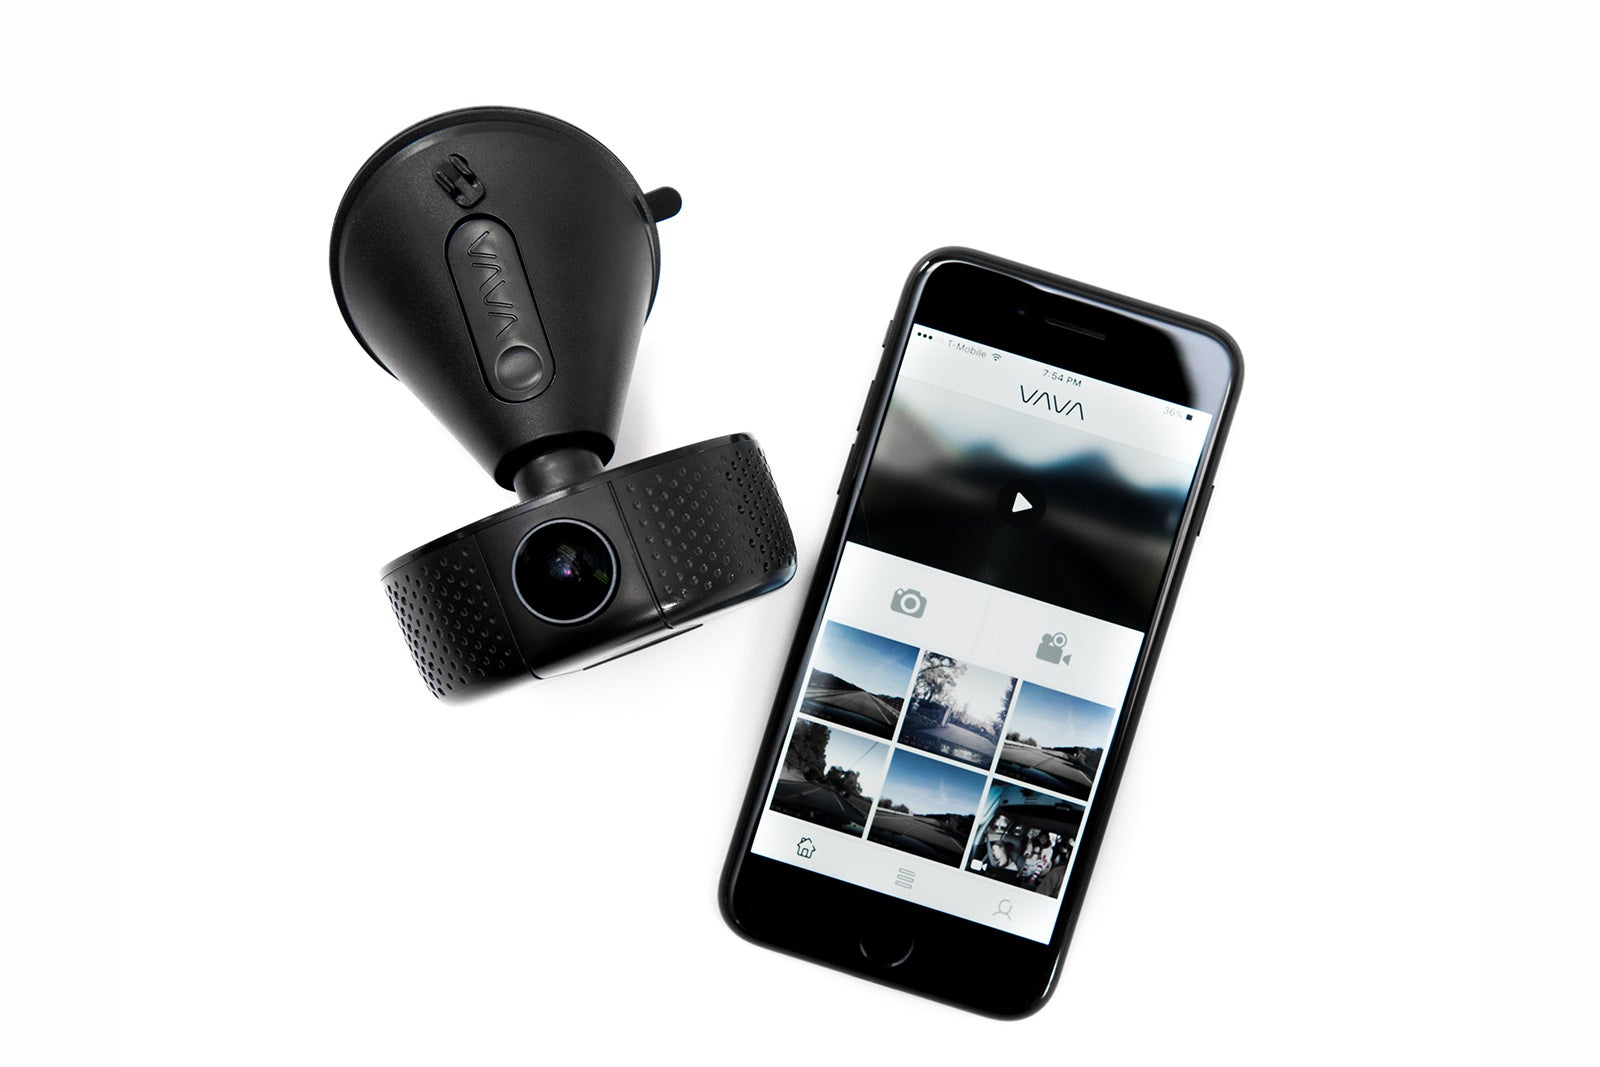 Vava Dash Cam 2k Review Clever Design For Phone Centric